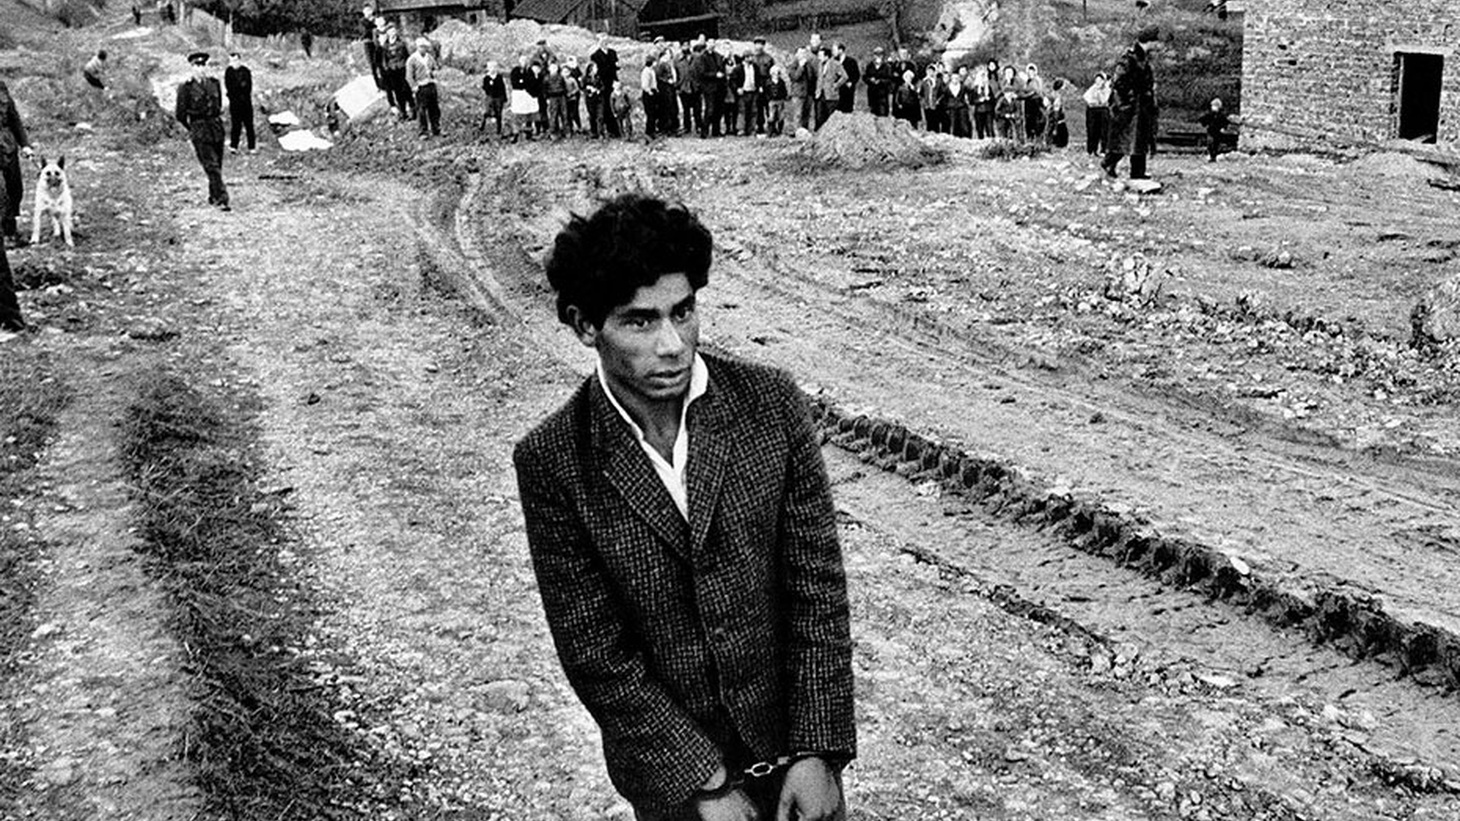 Edward Goldman urges listeners to visit the current Josef Koudelka exhibition at the Getty to see Koudelka's enchantingly, hauntingly melancholic black and white images.